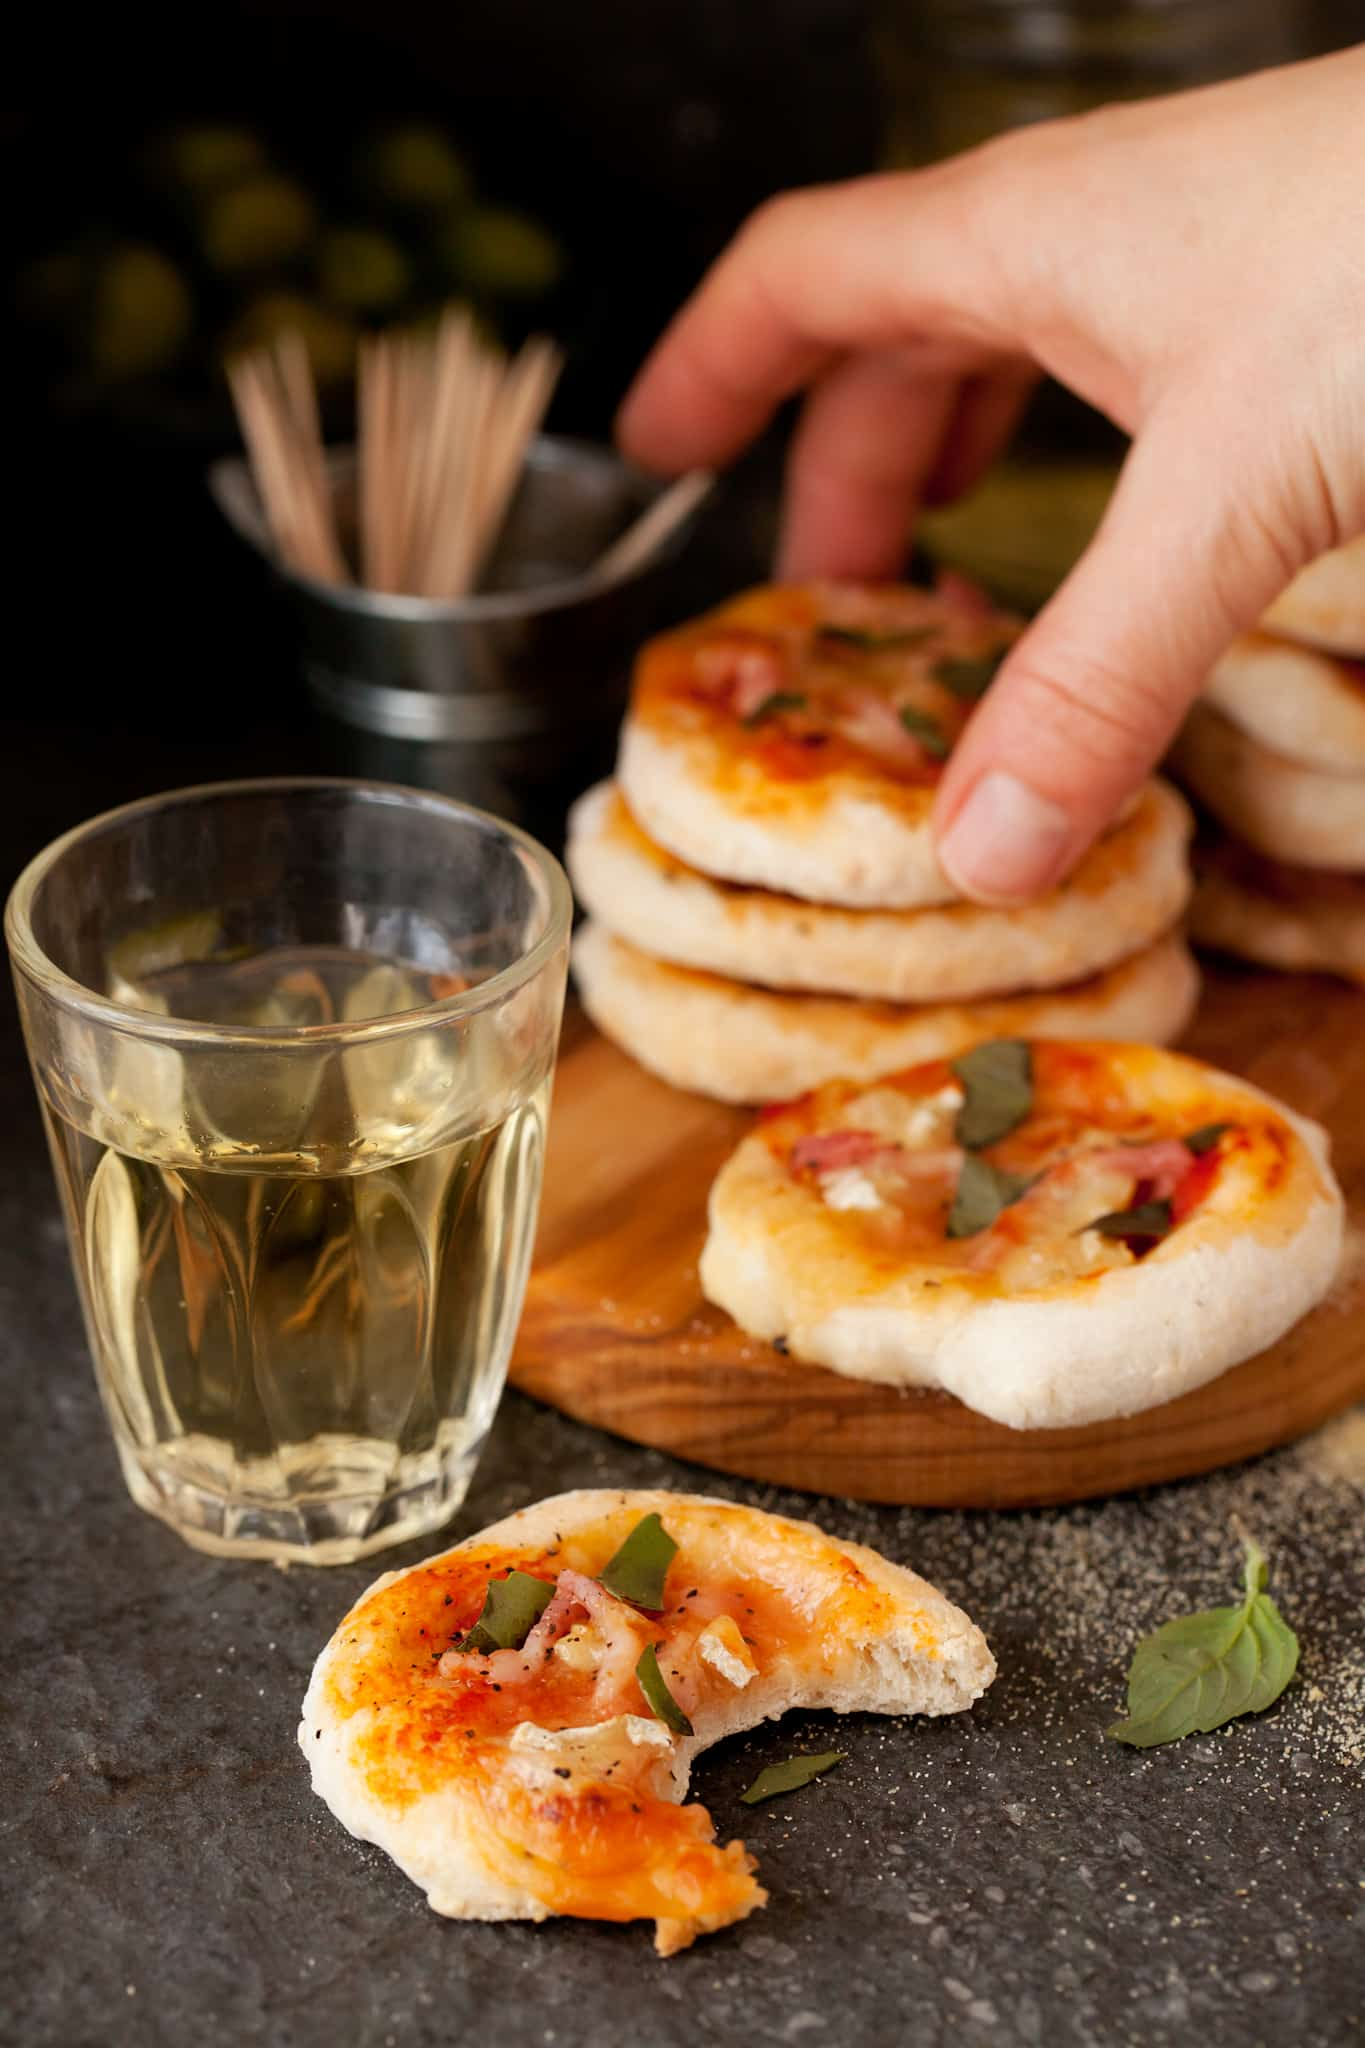 Bacon Brie Basil Mini Pizzas perfect for Game Day! #gameday #appetizer #pizza #fingerfood